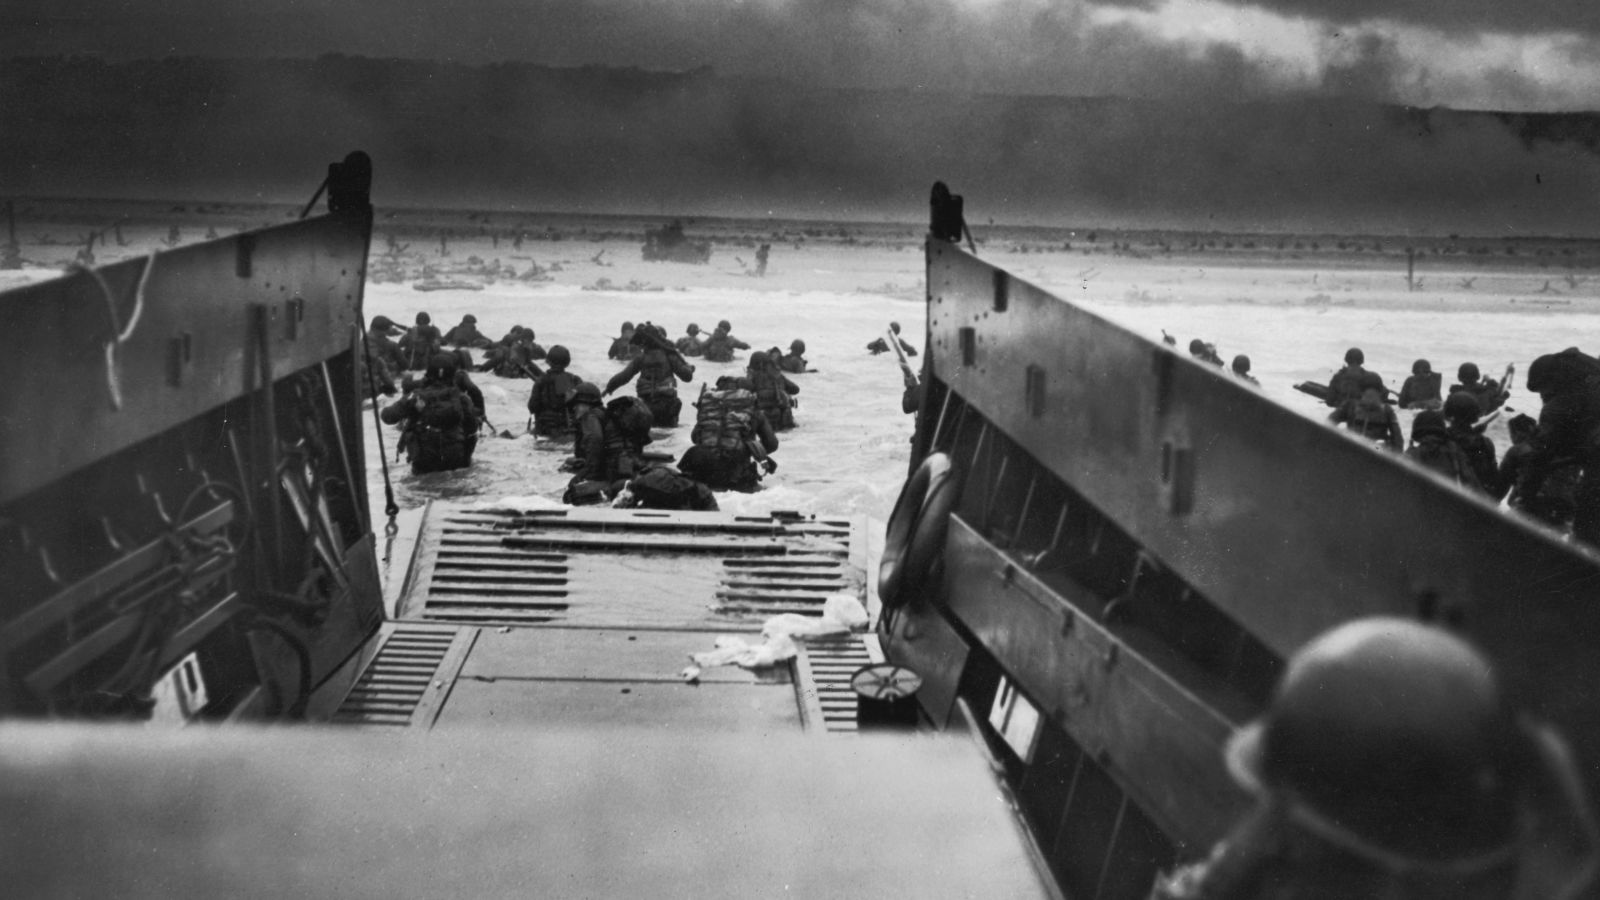 In pictures: The Allied invasion of Normandy